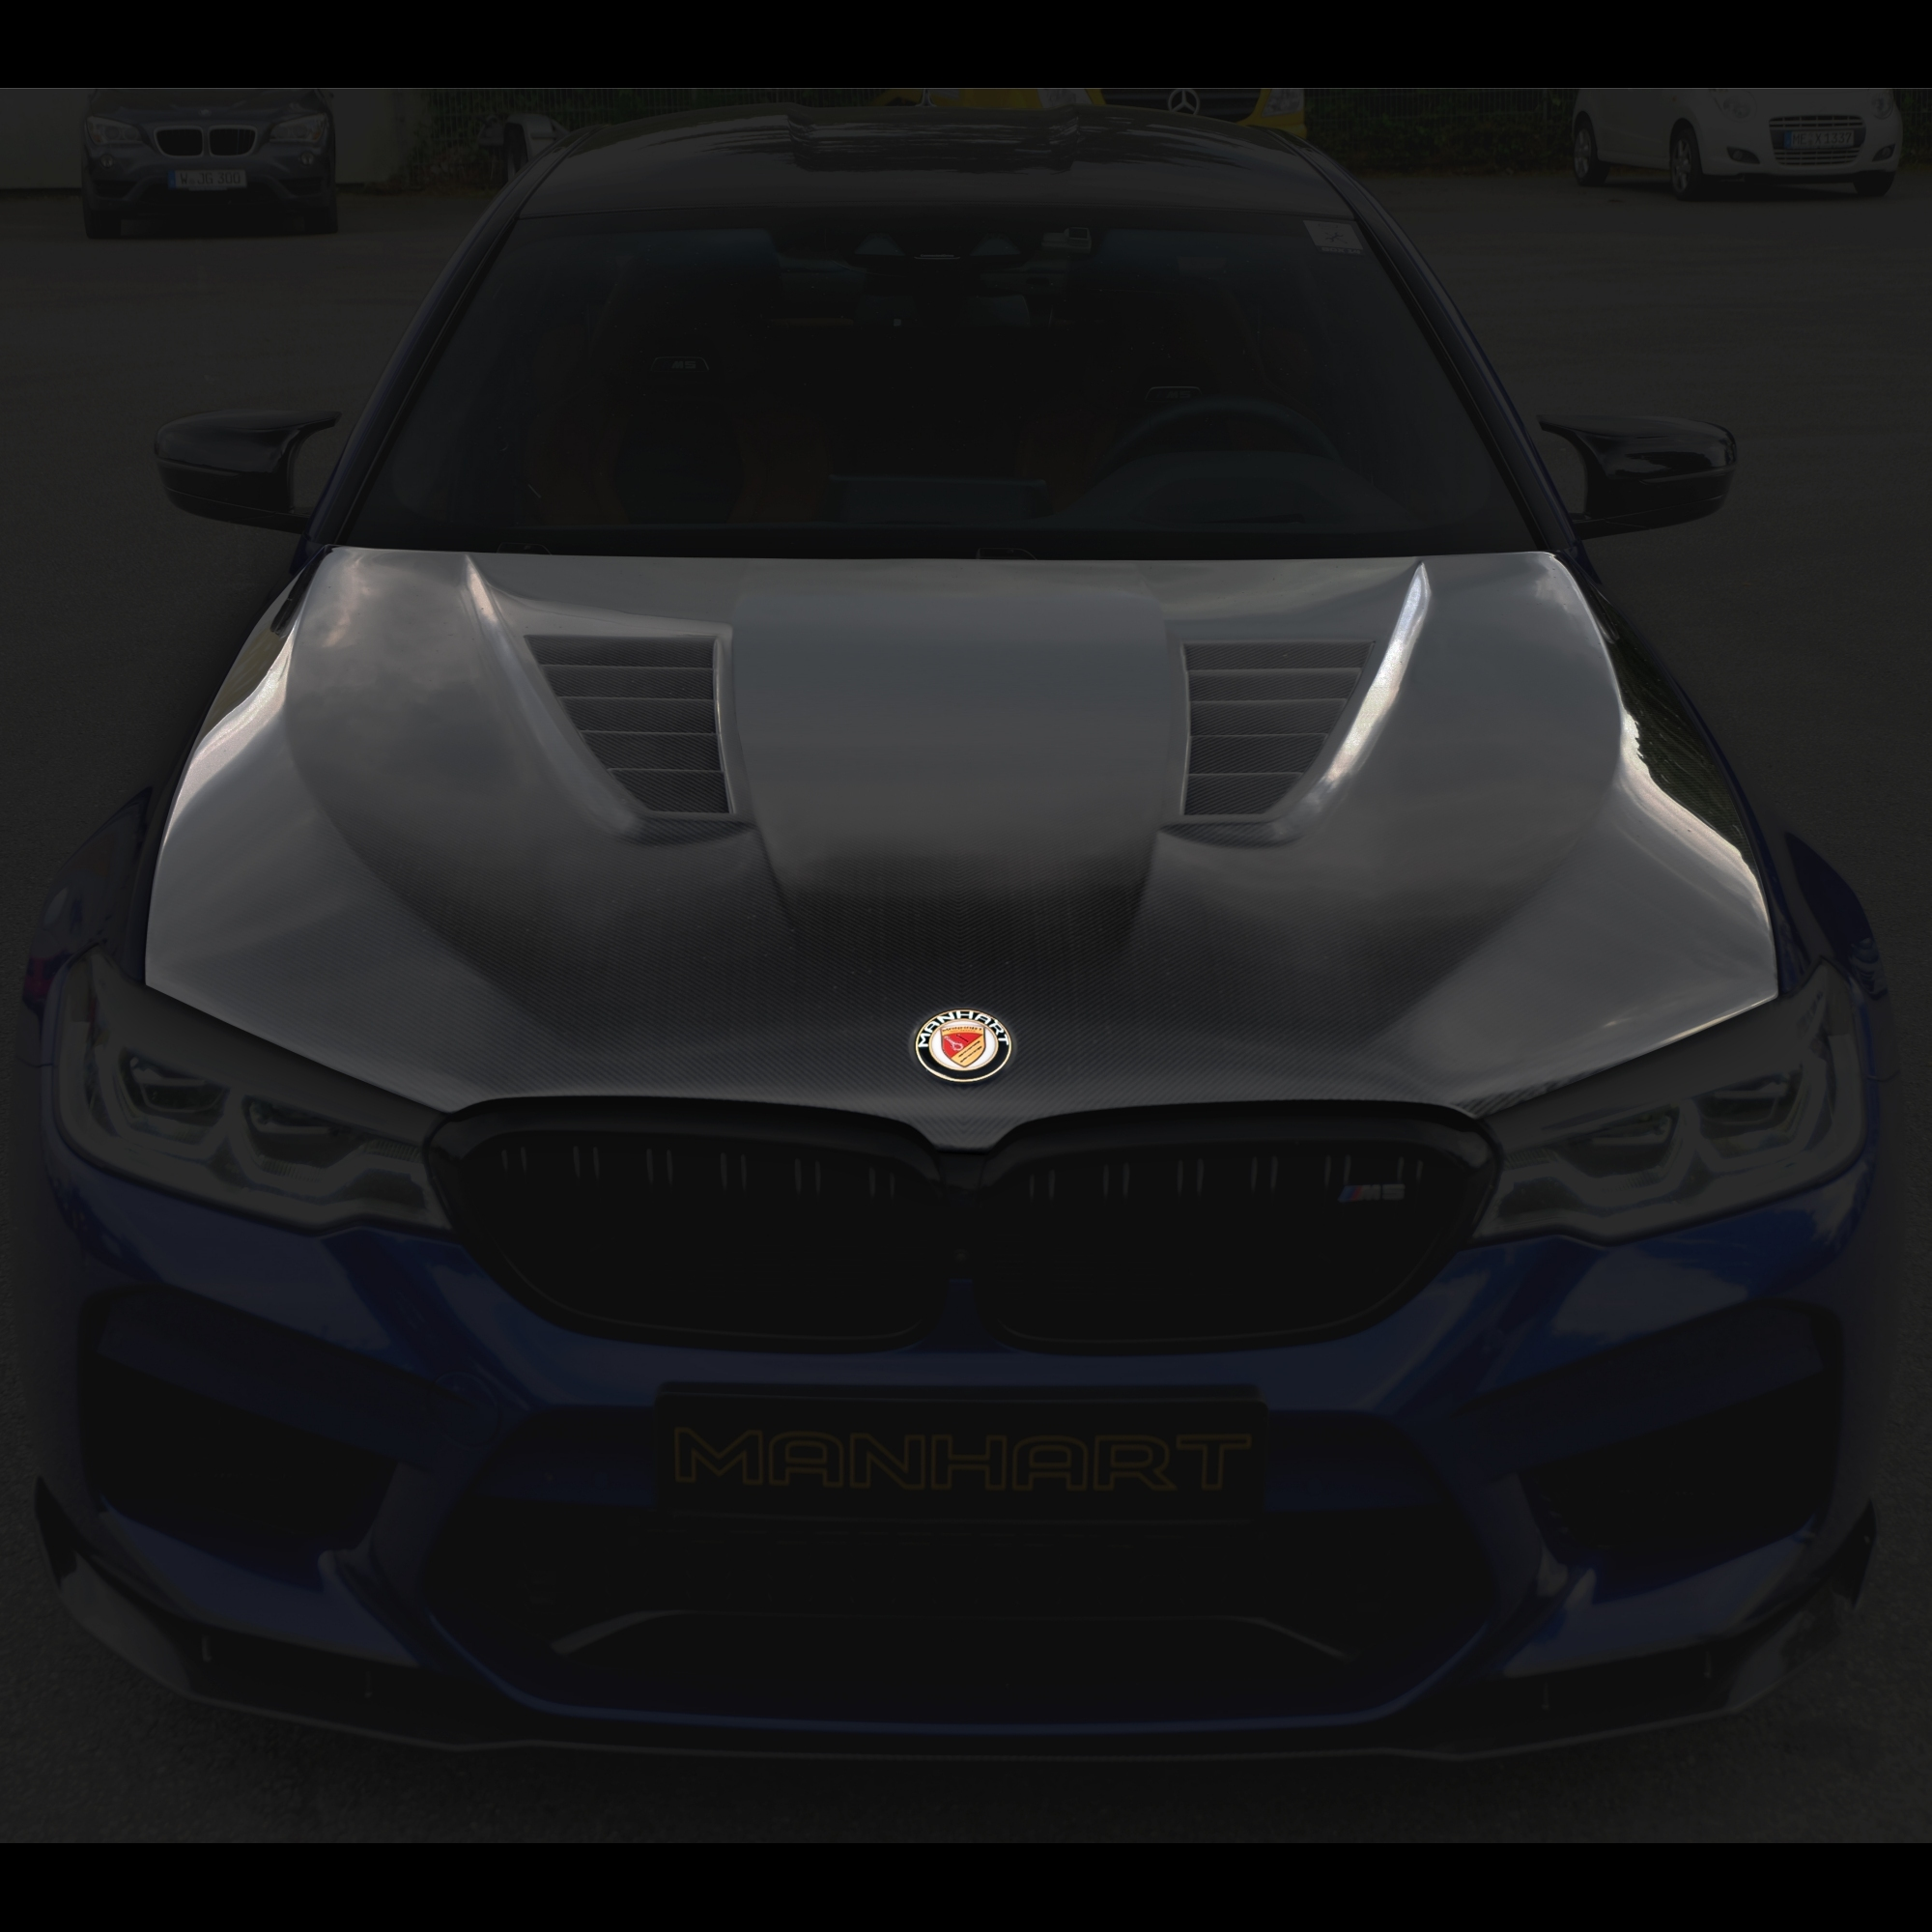 Manhart Carbon Hood Bmw F90 M5 Competition With Gtr Air Vents M5 Competition F90 M M Performance Bmw Manhart Performance Online Shop